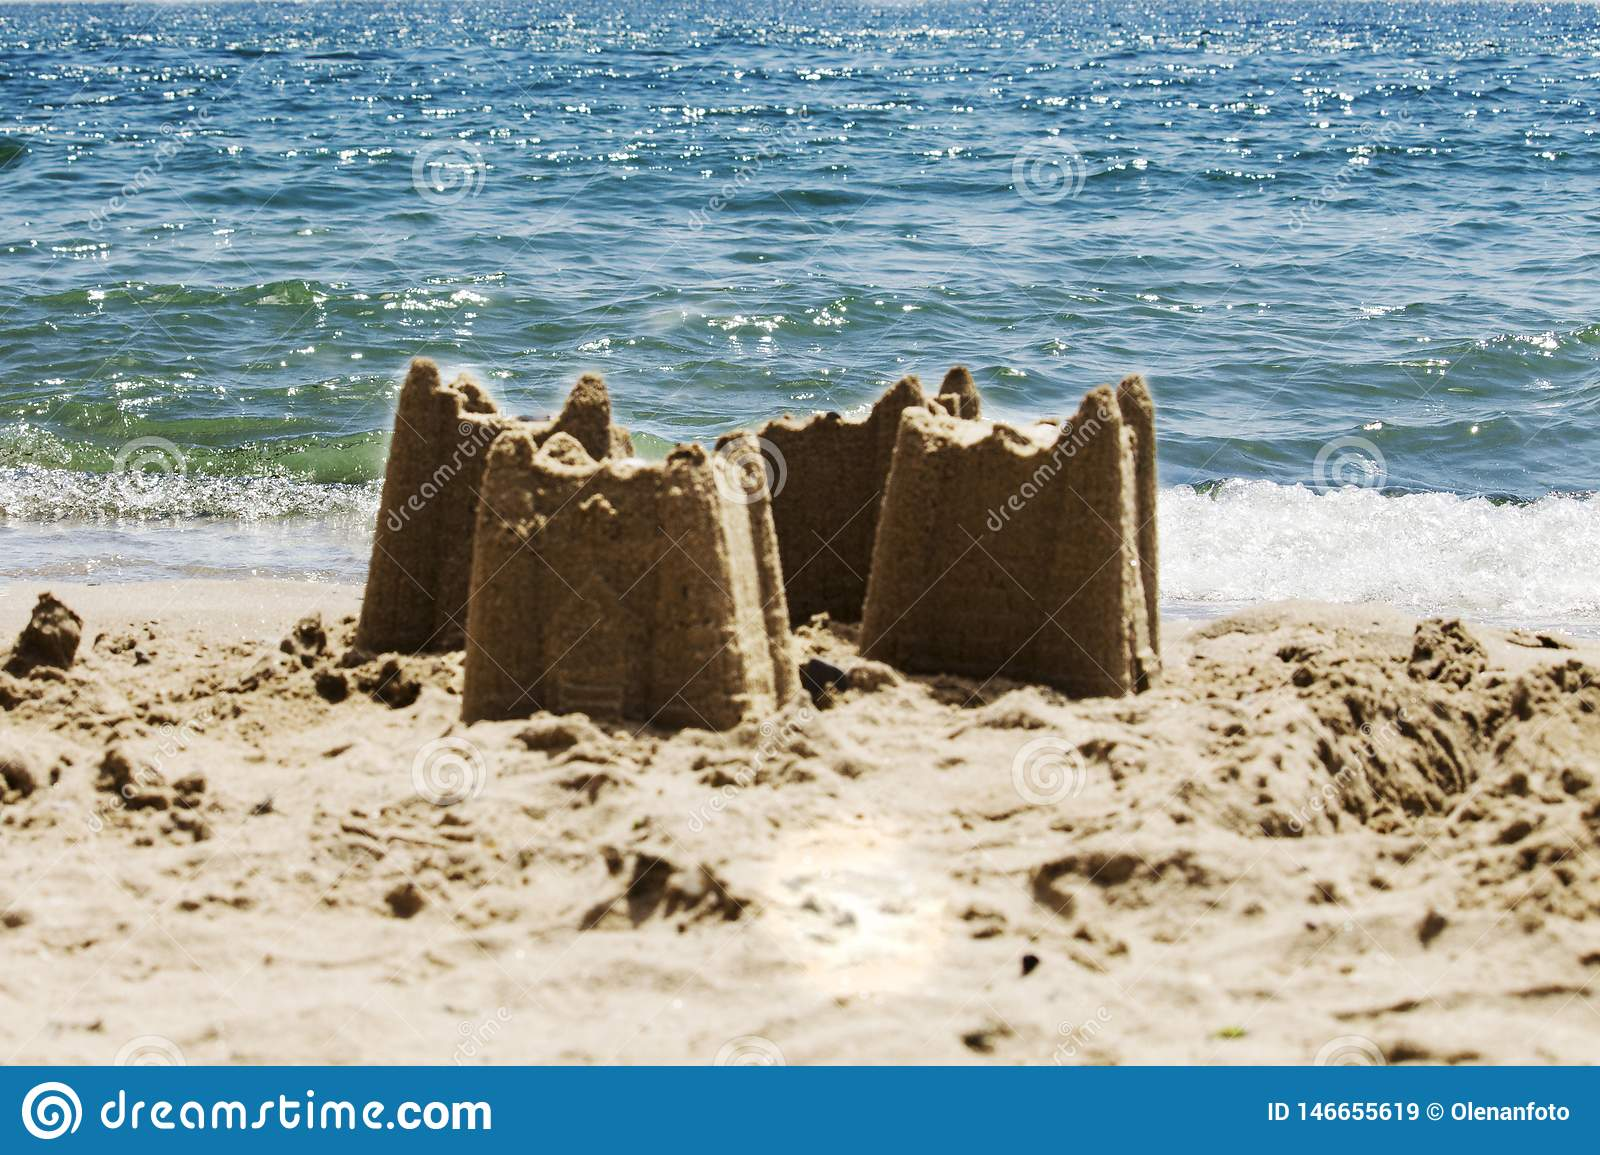 Sand castles on the beach with the sea in the background, s